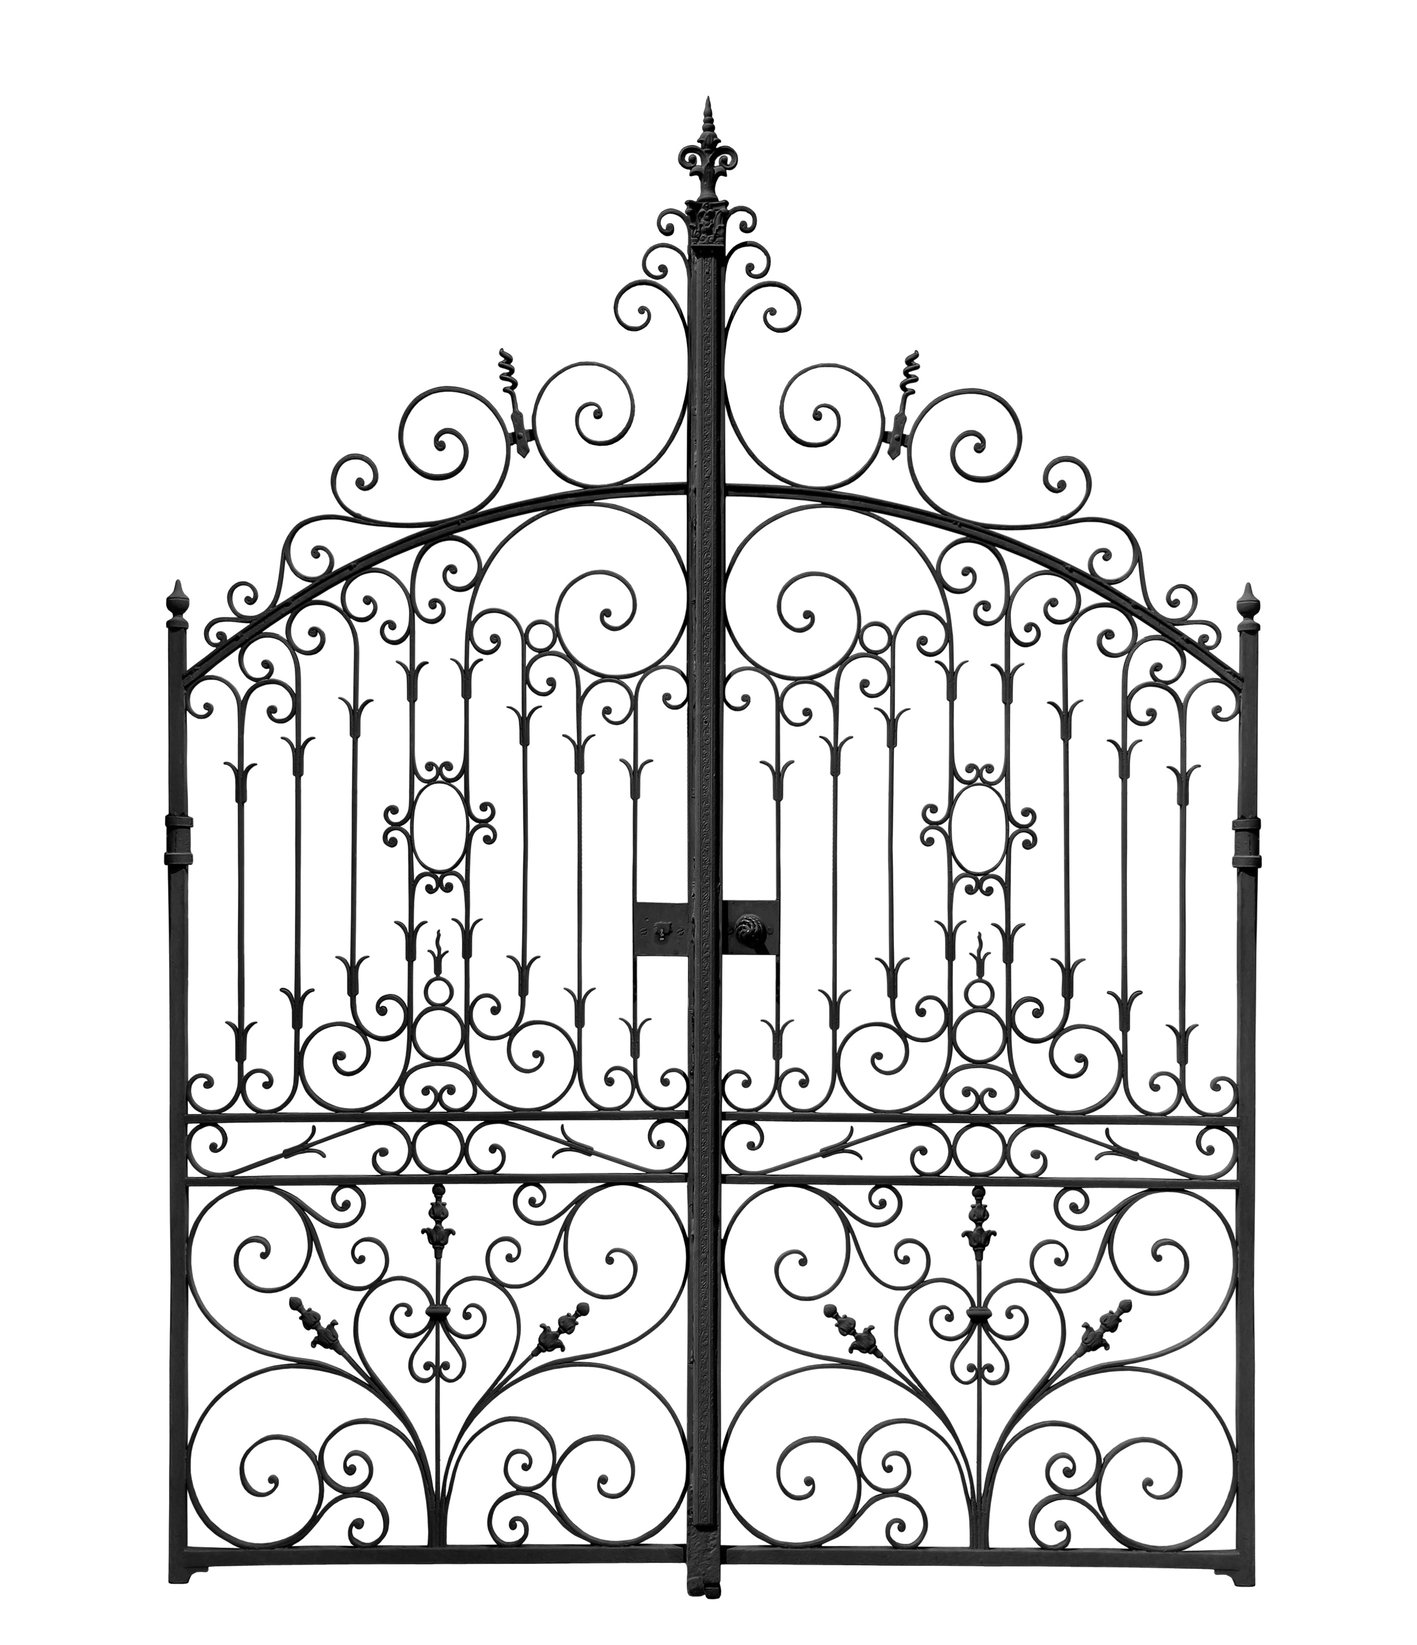 Clip art library . Gate clipart wrought iron